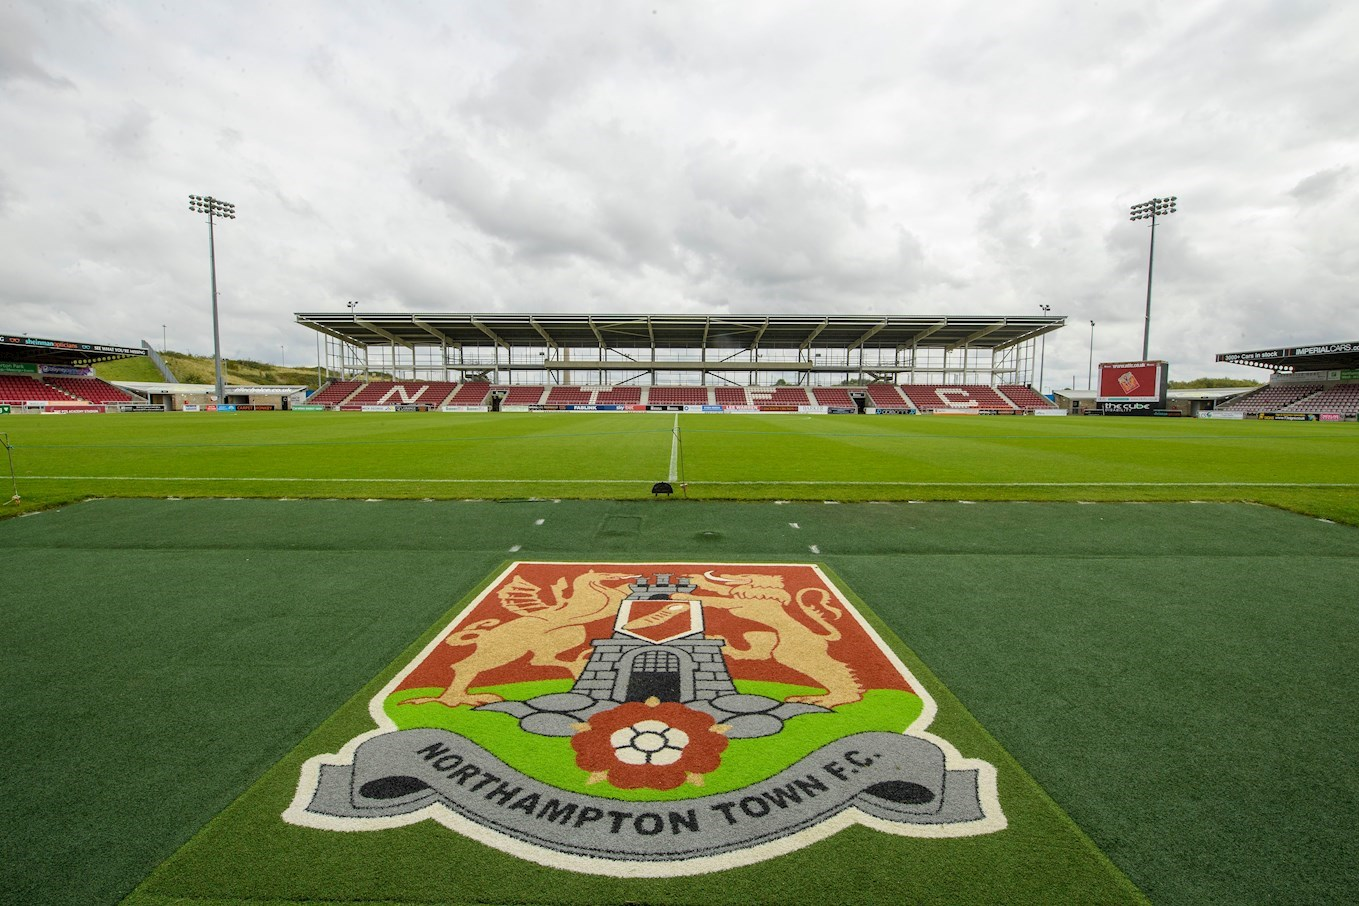 Tickets & Travel: Northampton Town - News - Stevenage Football Club